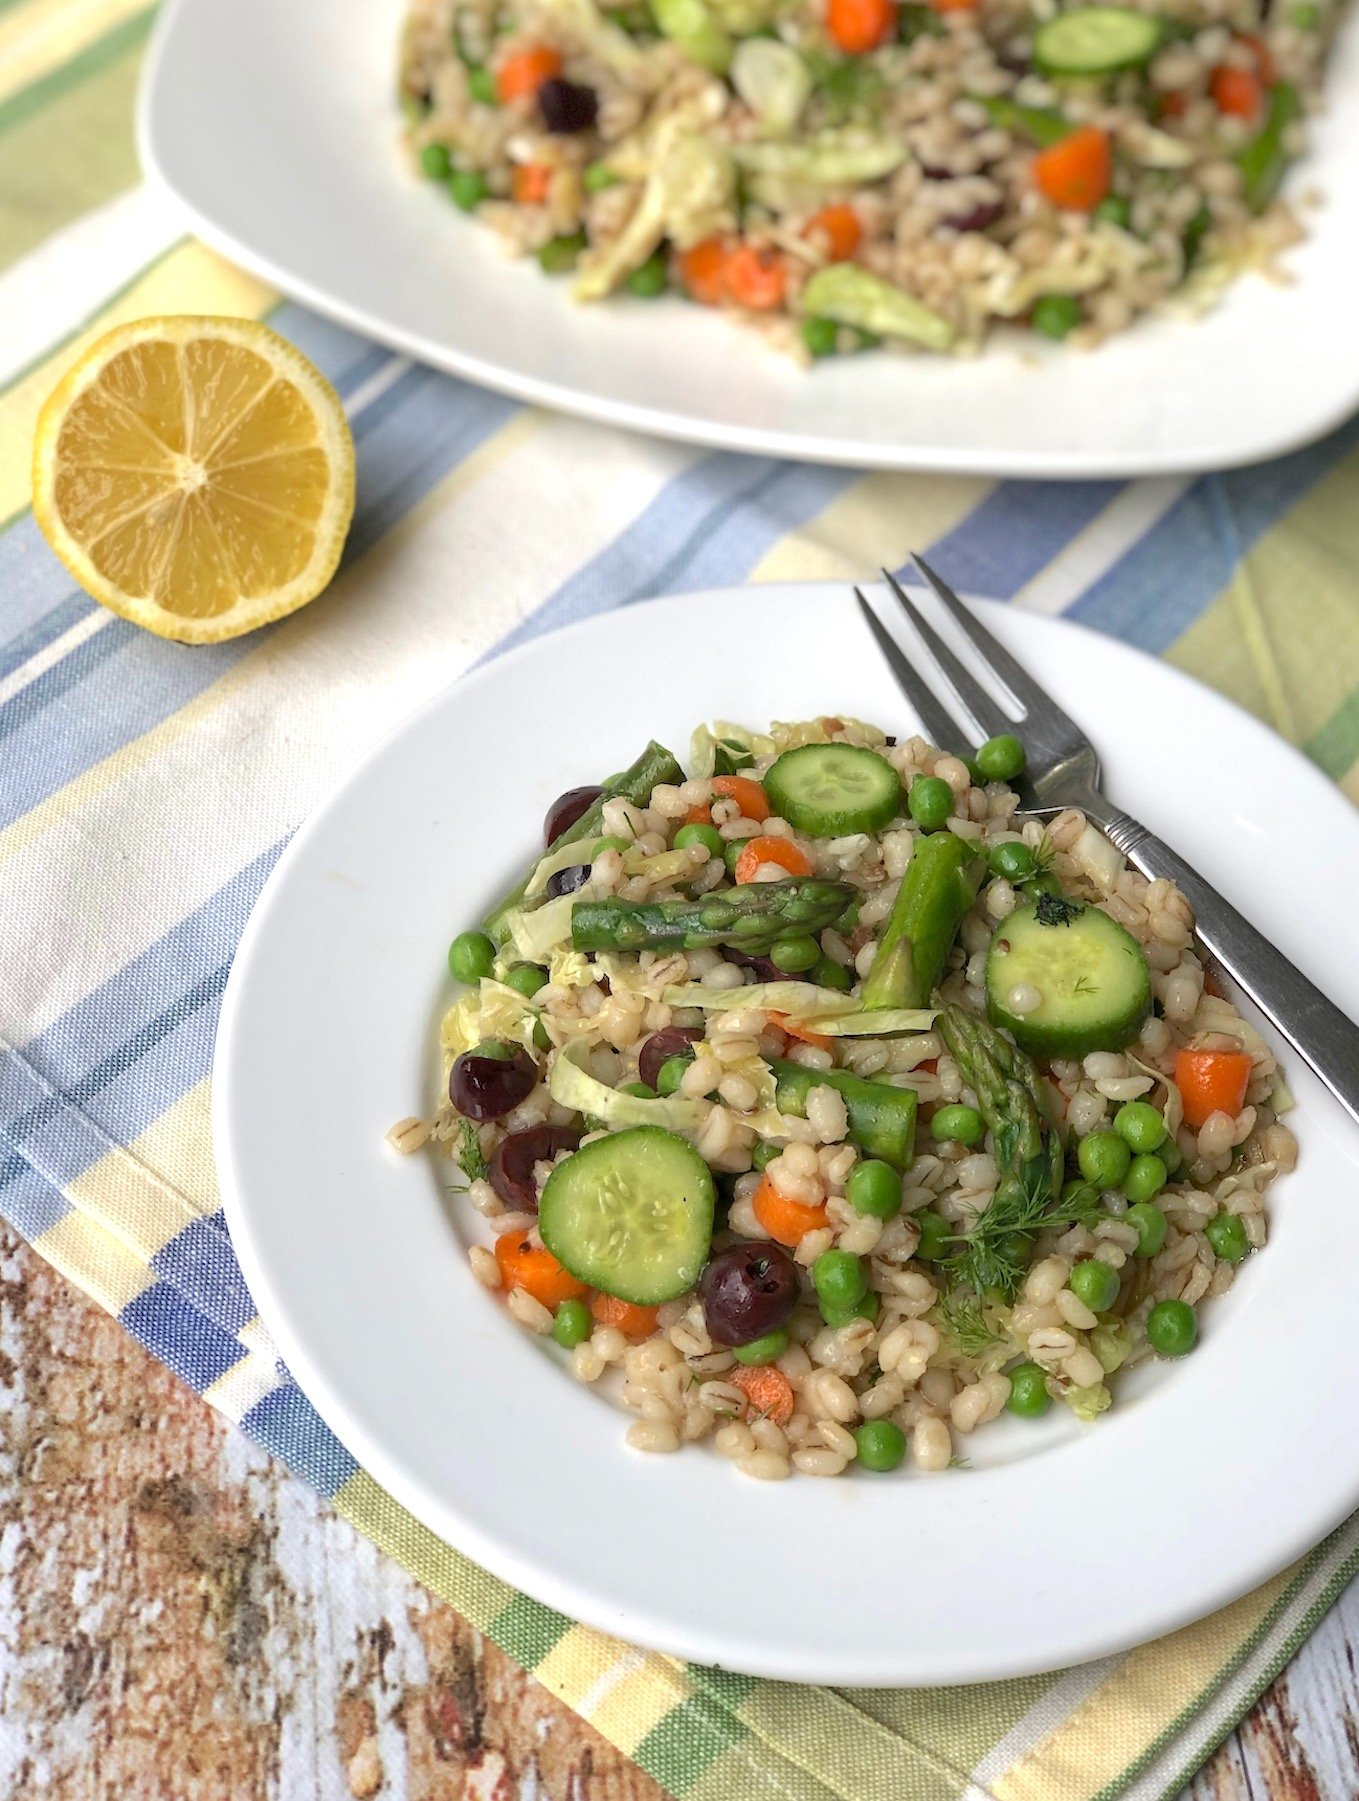 Barley and asparagus salad